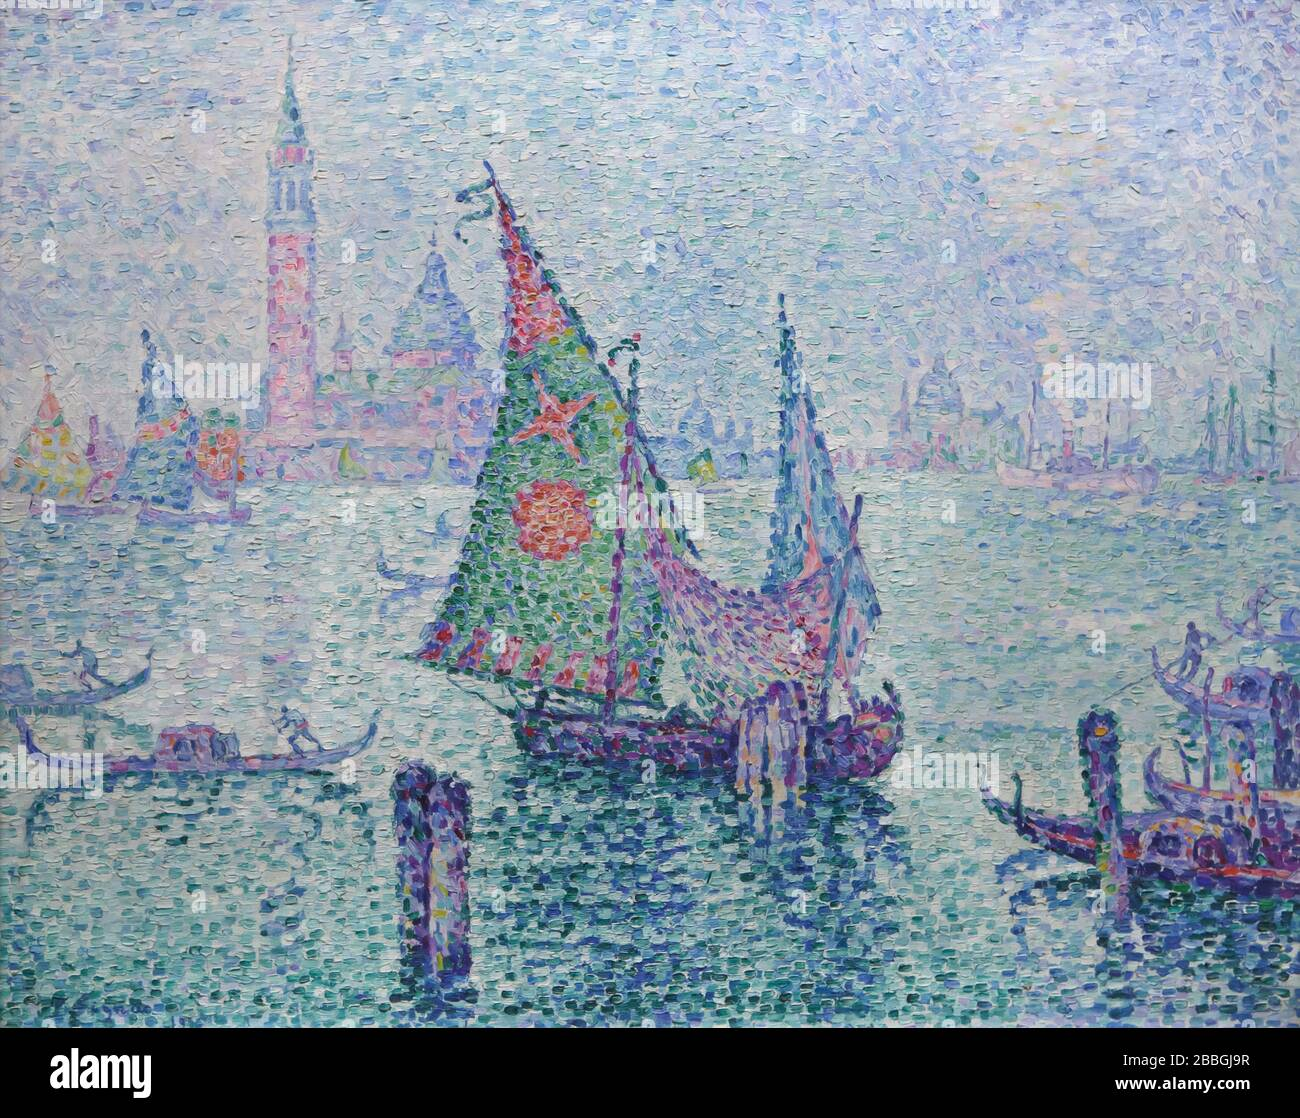 Painting 'The Green Sail' ('La Voile verte') by French Neo-Impressionist painter Paul Signac (1899) on display in the Musée d'Orsay in Paris, France. Stock Photo